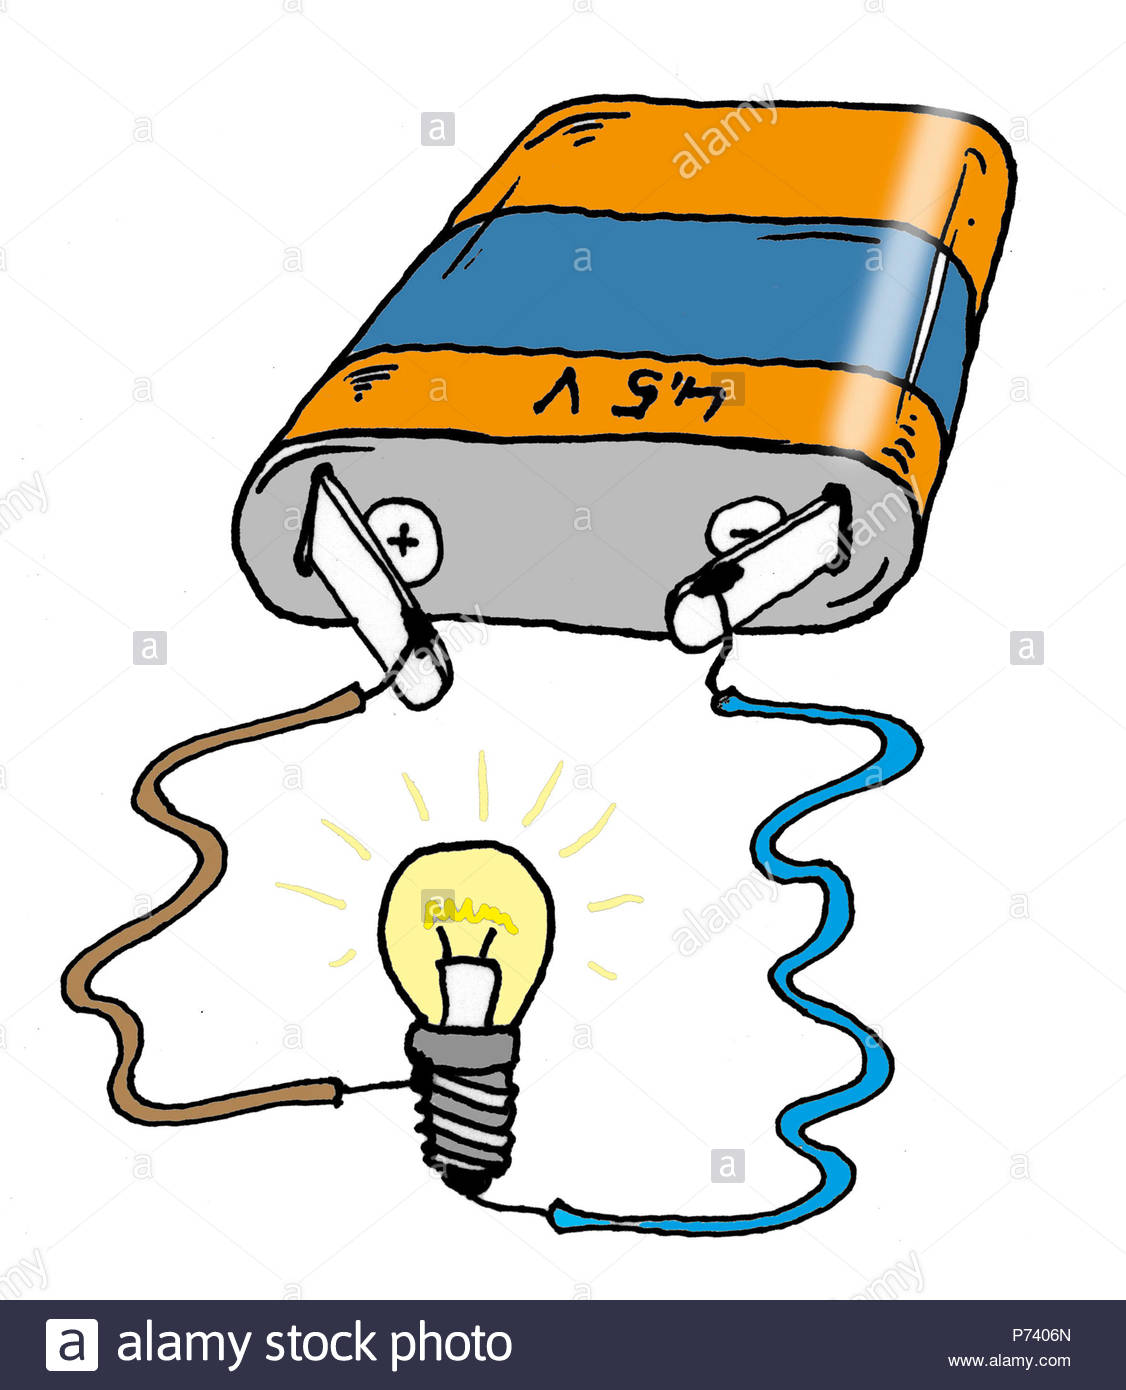 Battery Light Bulb Circuit Stock Photos In A Parallel With Each Lightbulb The Power And Series Electricity Image